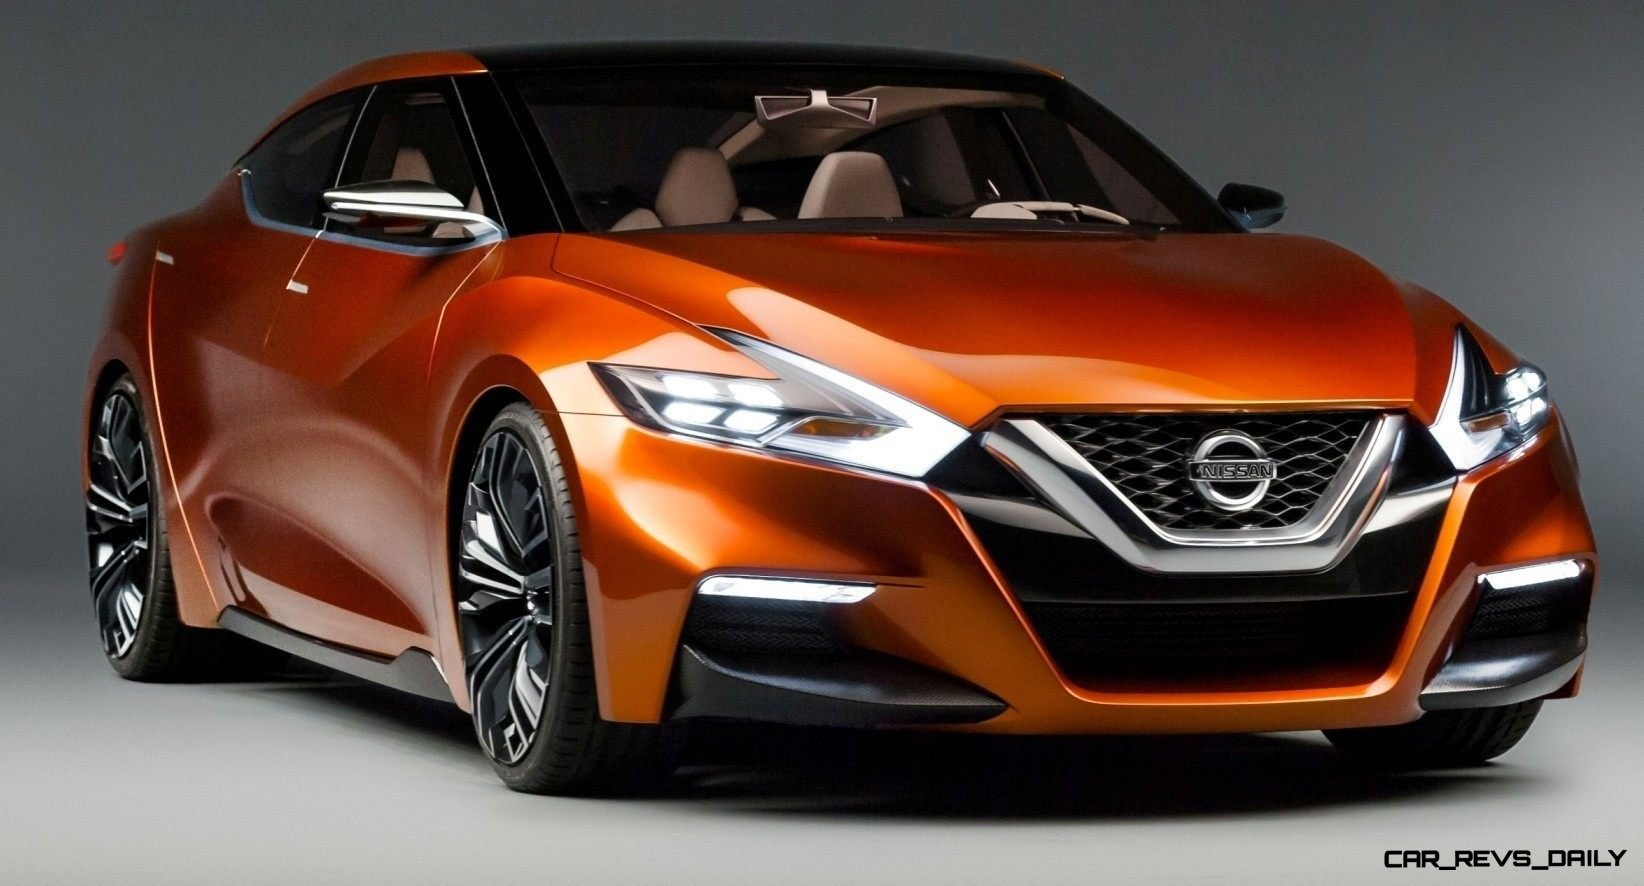 Updated 2014 Nissan Sports Sedan Concept Brings 35 In Lower Roof First Generation Cefiro Before I Forget It Seems The New Grille Face Has Been Officially Named V Motion Appears As Description And Also Swept Back Appearance